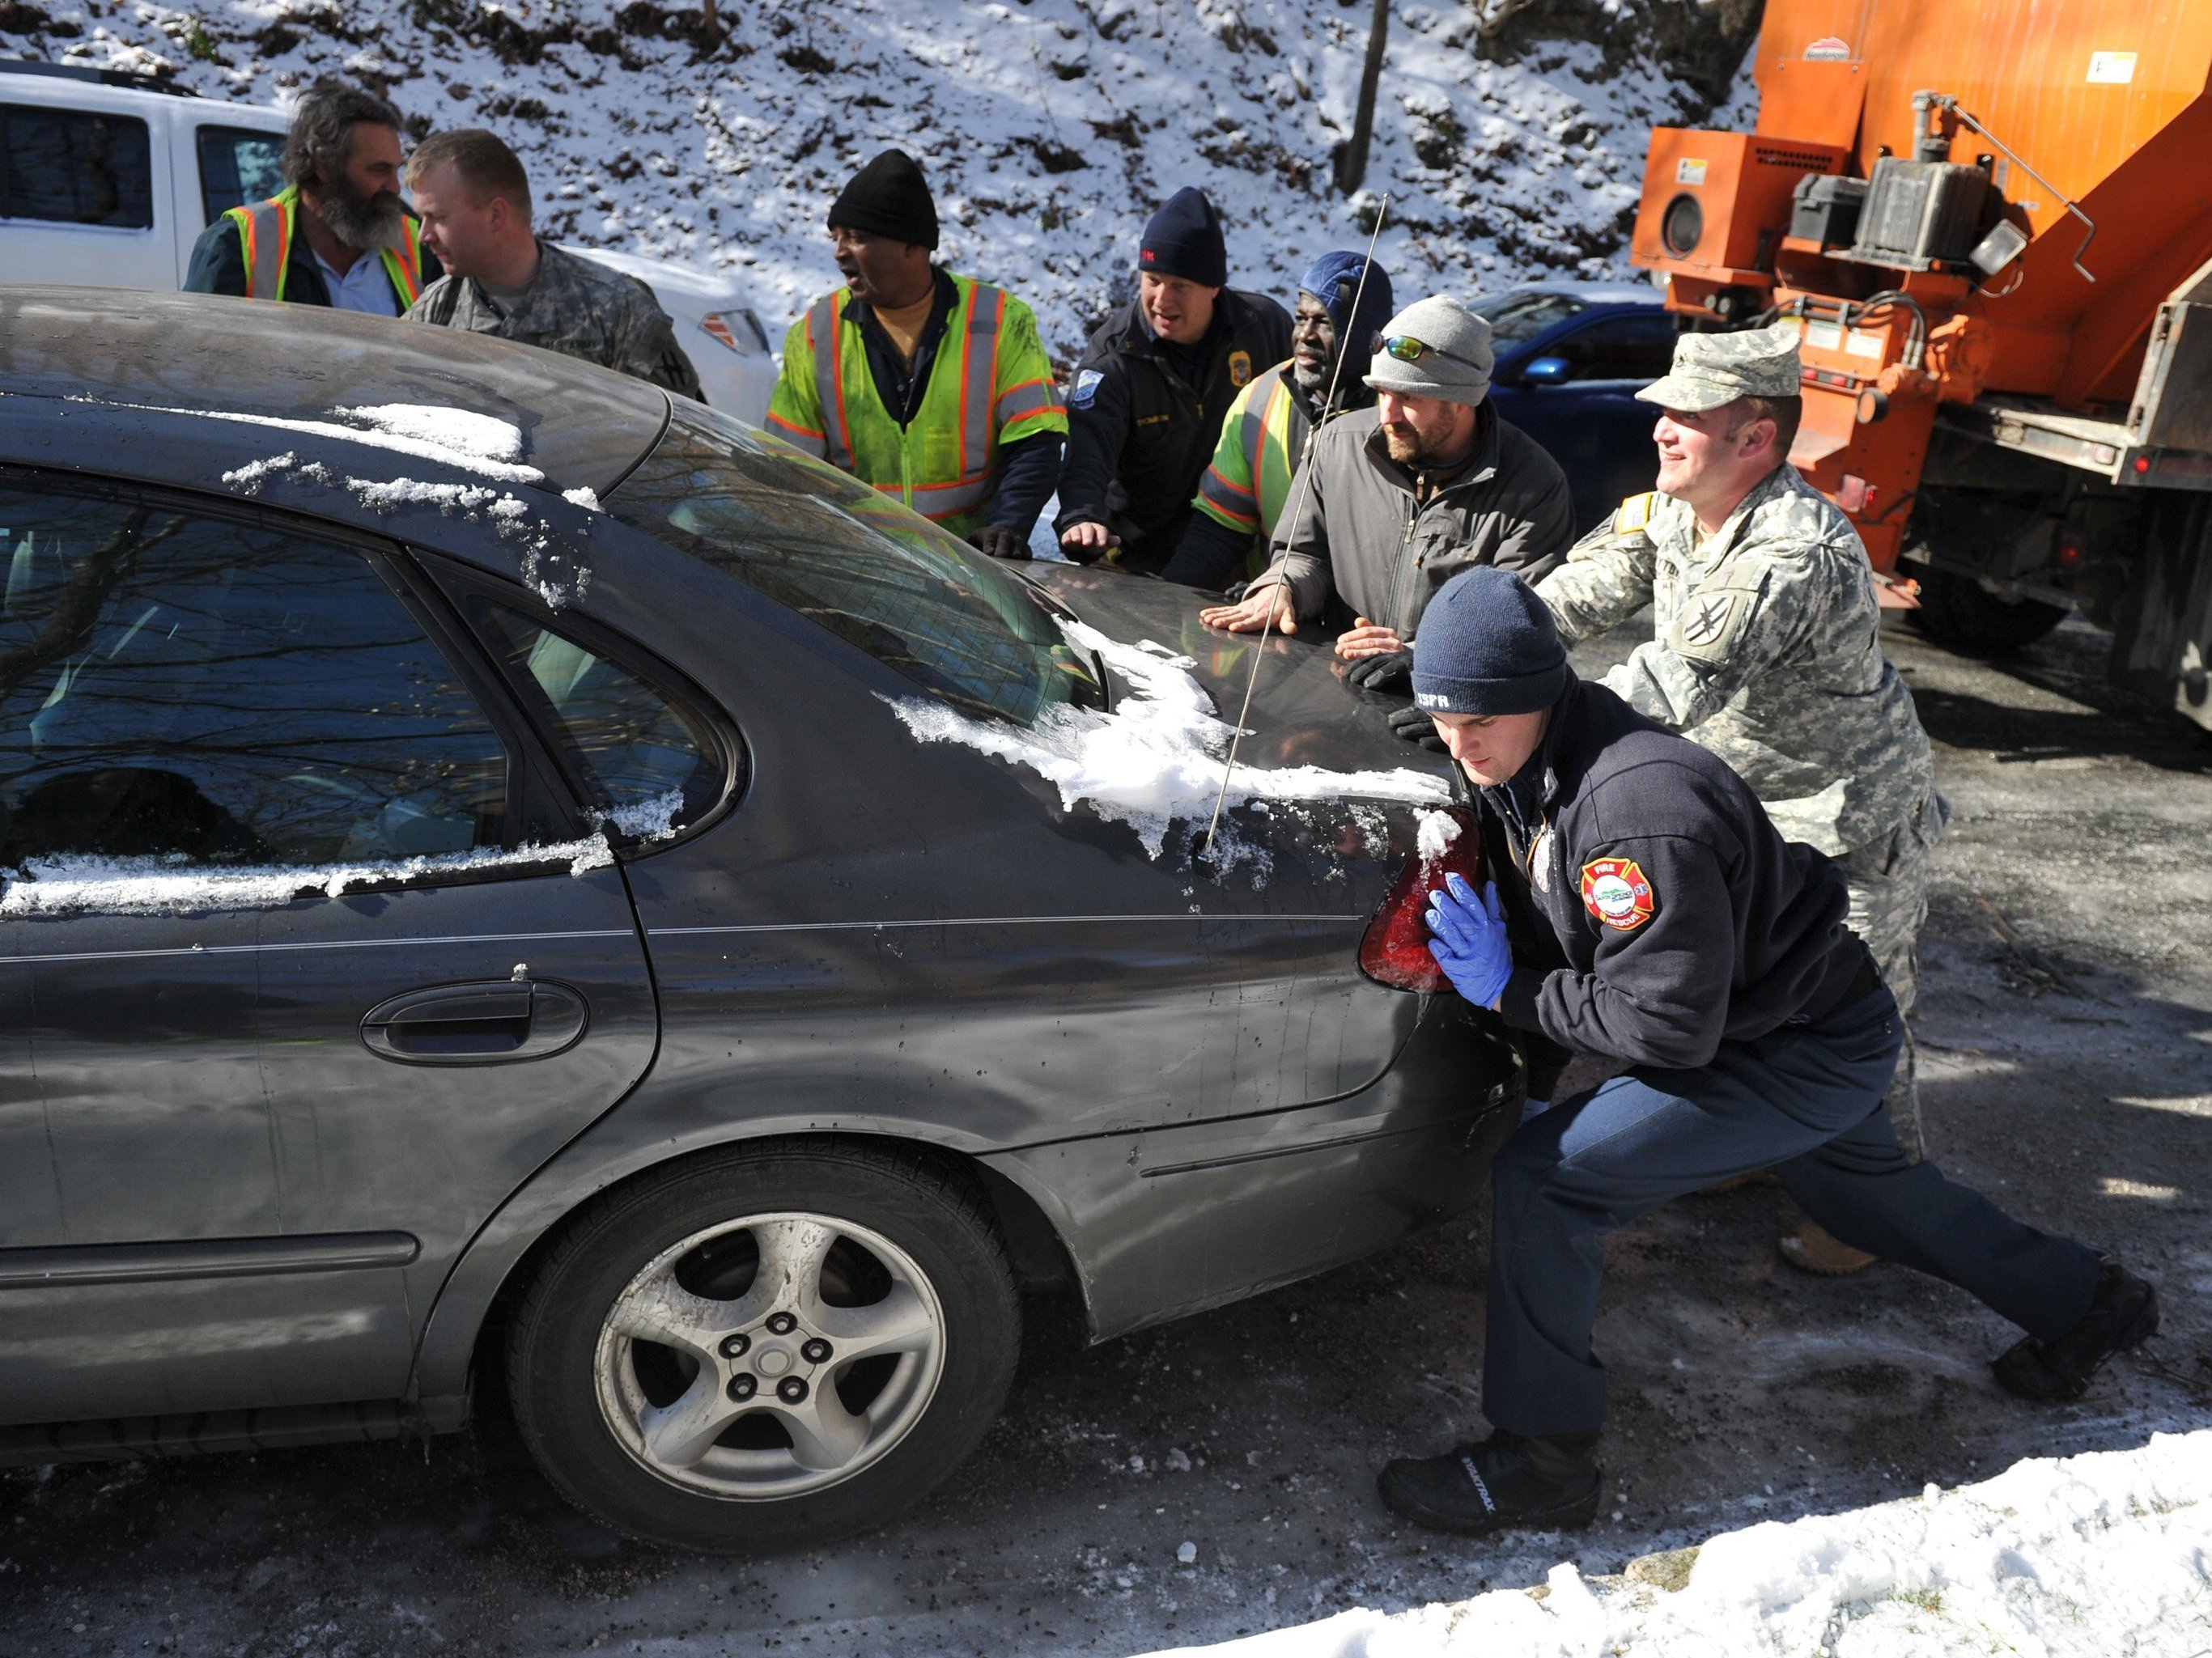 Last Cars Towed In Atlanta; Ice Is Gone, Traffic Is Moving